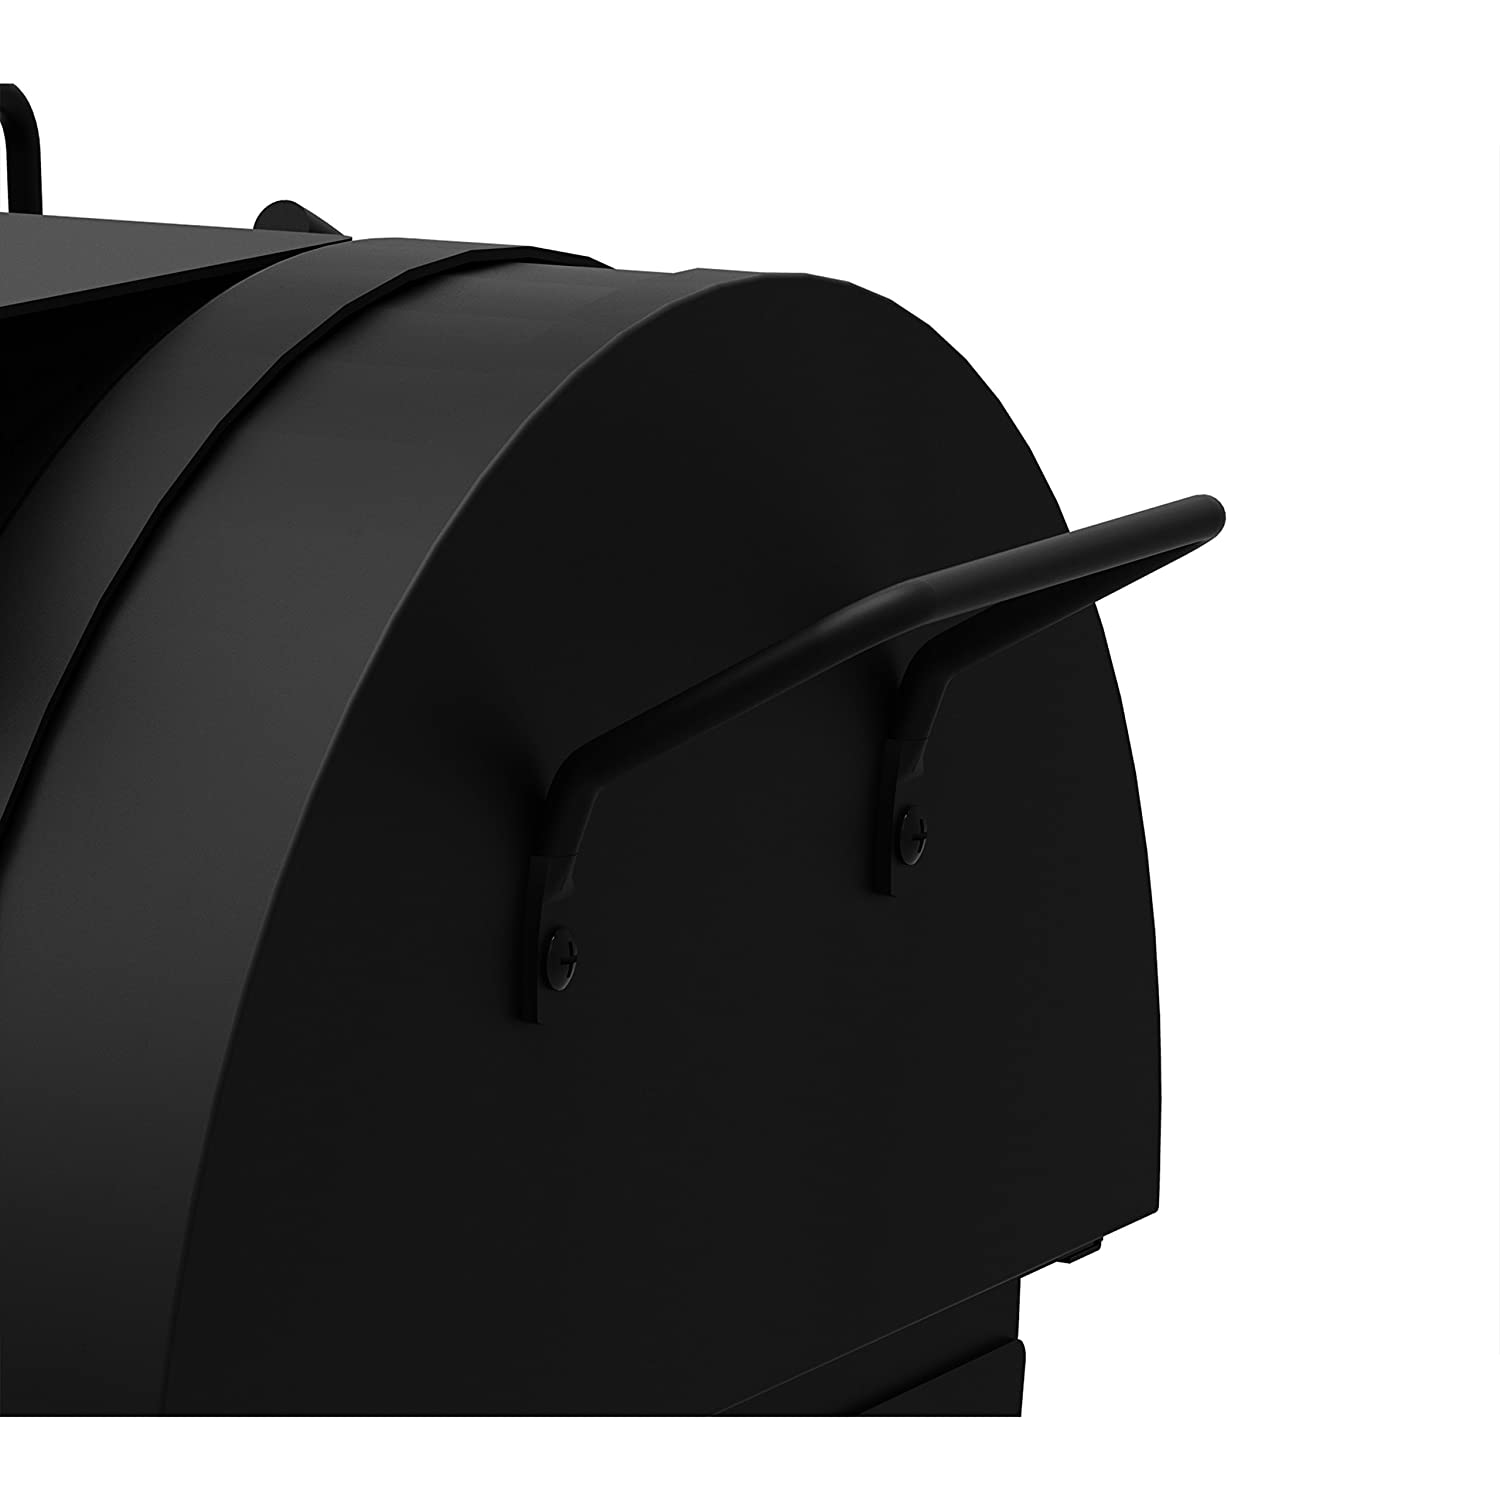 Dyna-Glo Signature Series DGSS287CB-D Portable Tabletop Charcoal Grill /& Side Firebox